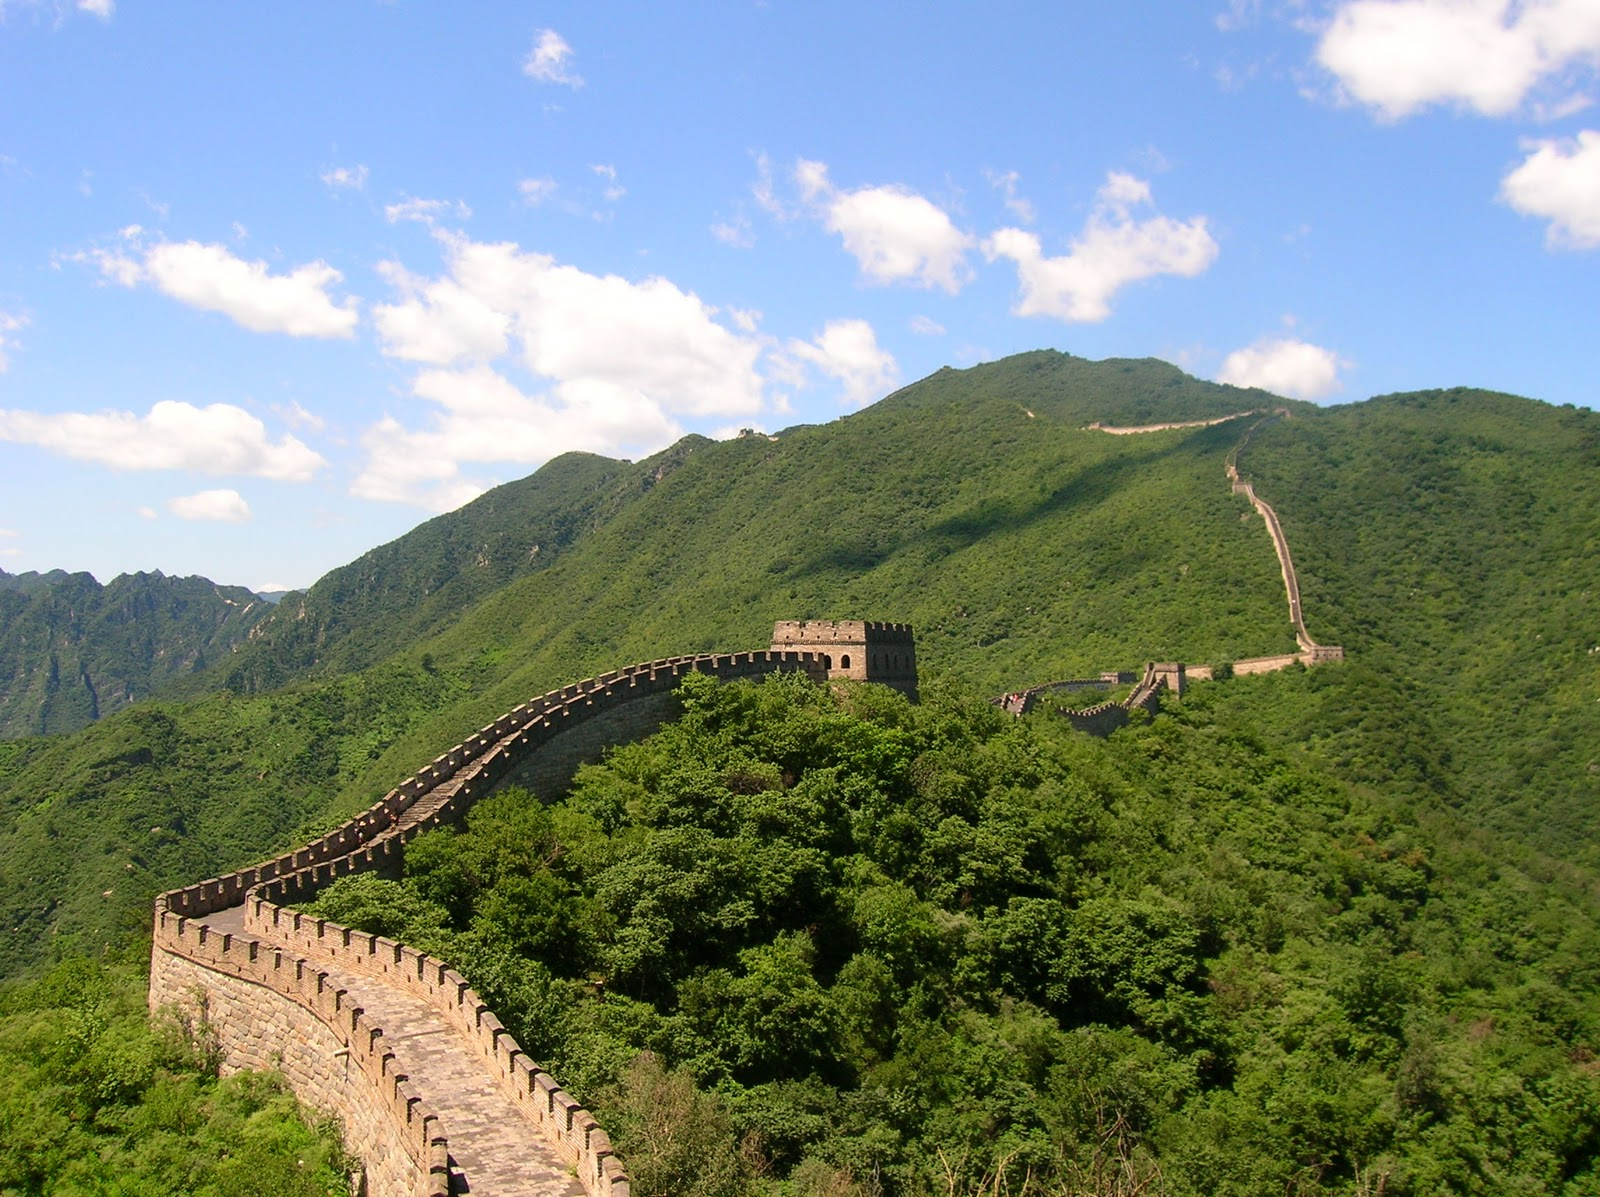 http://3.bp.blogspot.com/-c52Ziy1aBho/T_Eg04Vh1JI/AAAAAAAAEUs/NUPMzAiqoAM/s1600/Great_Wall_of_China.JPG